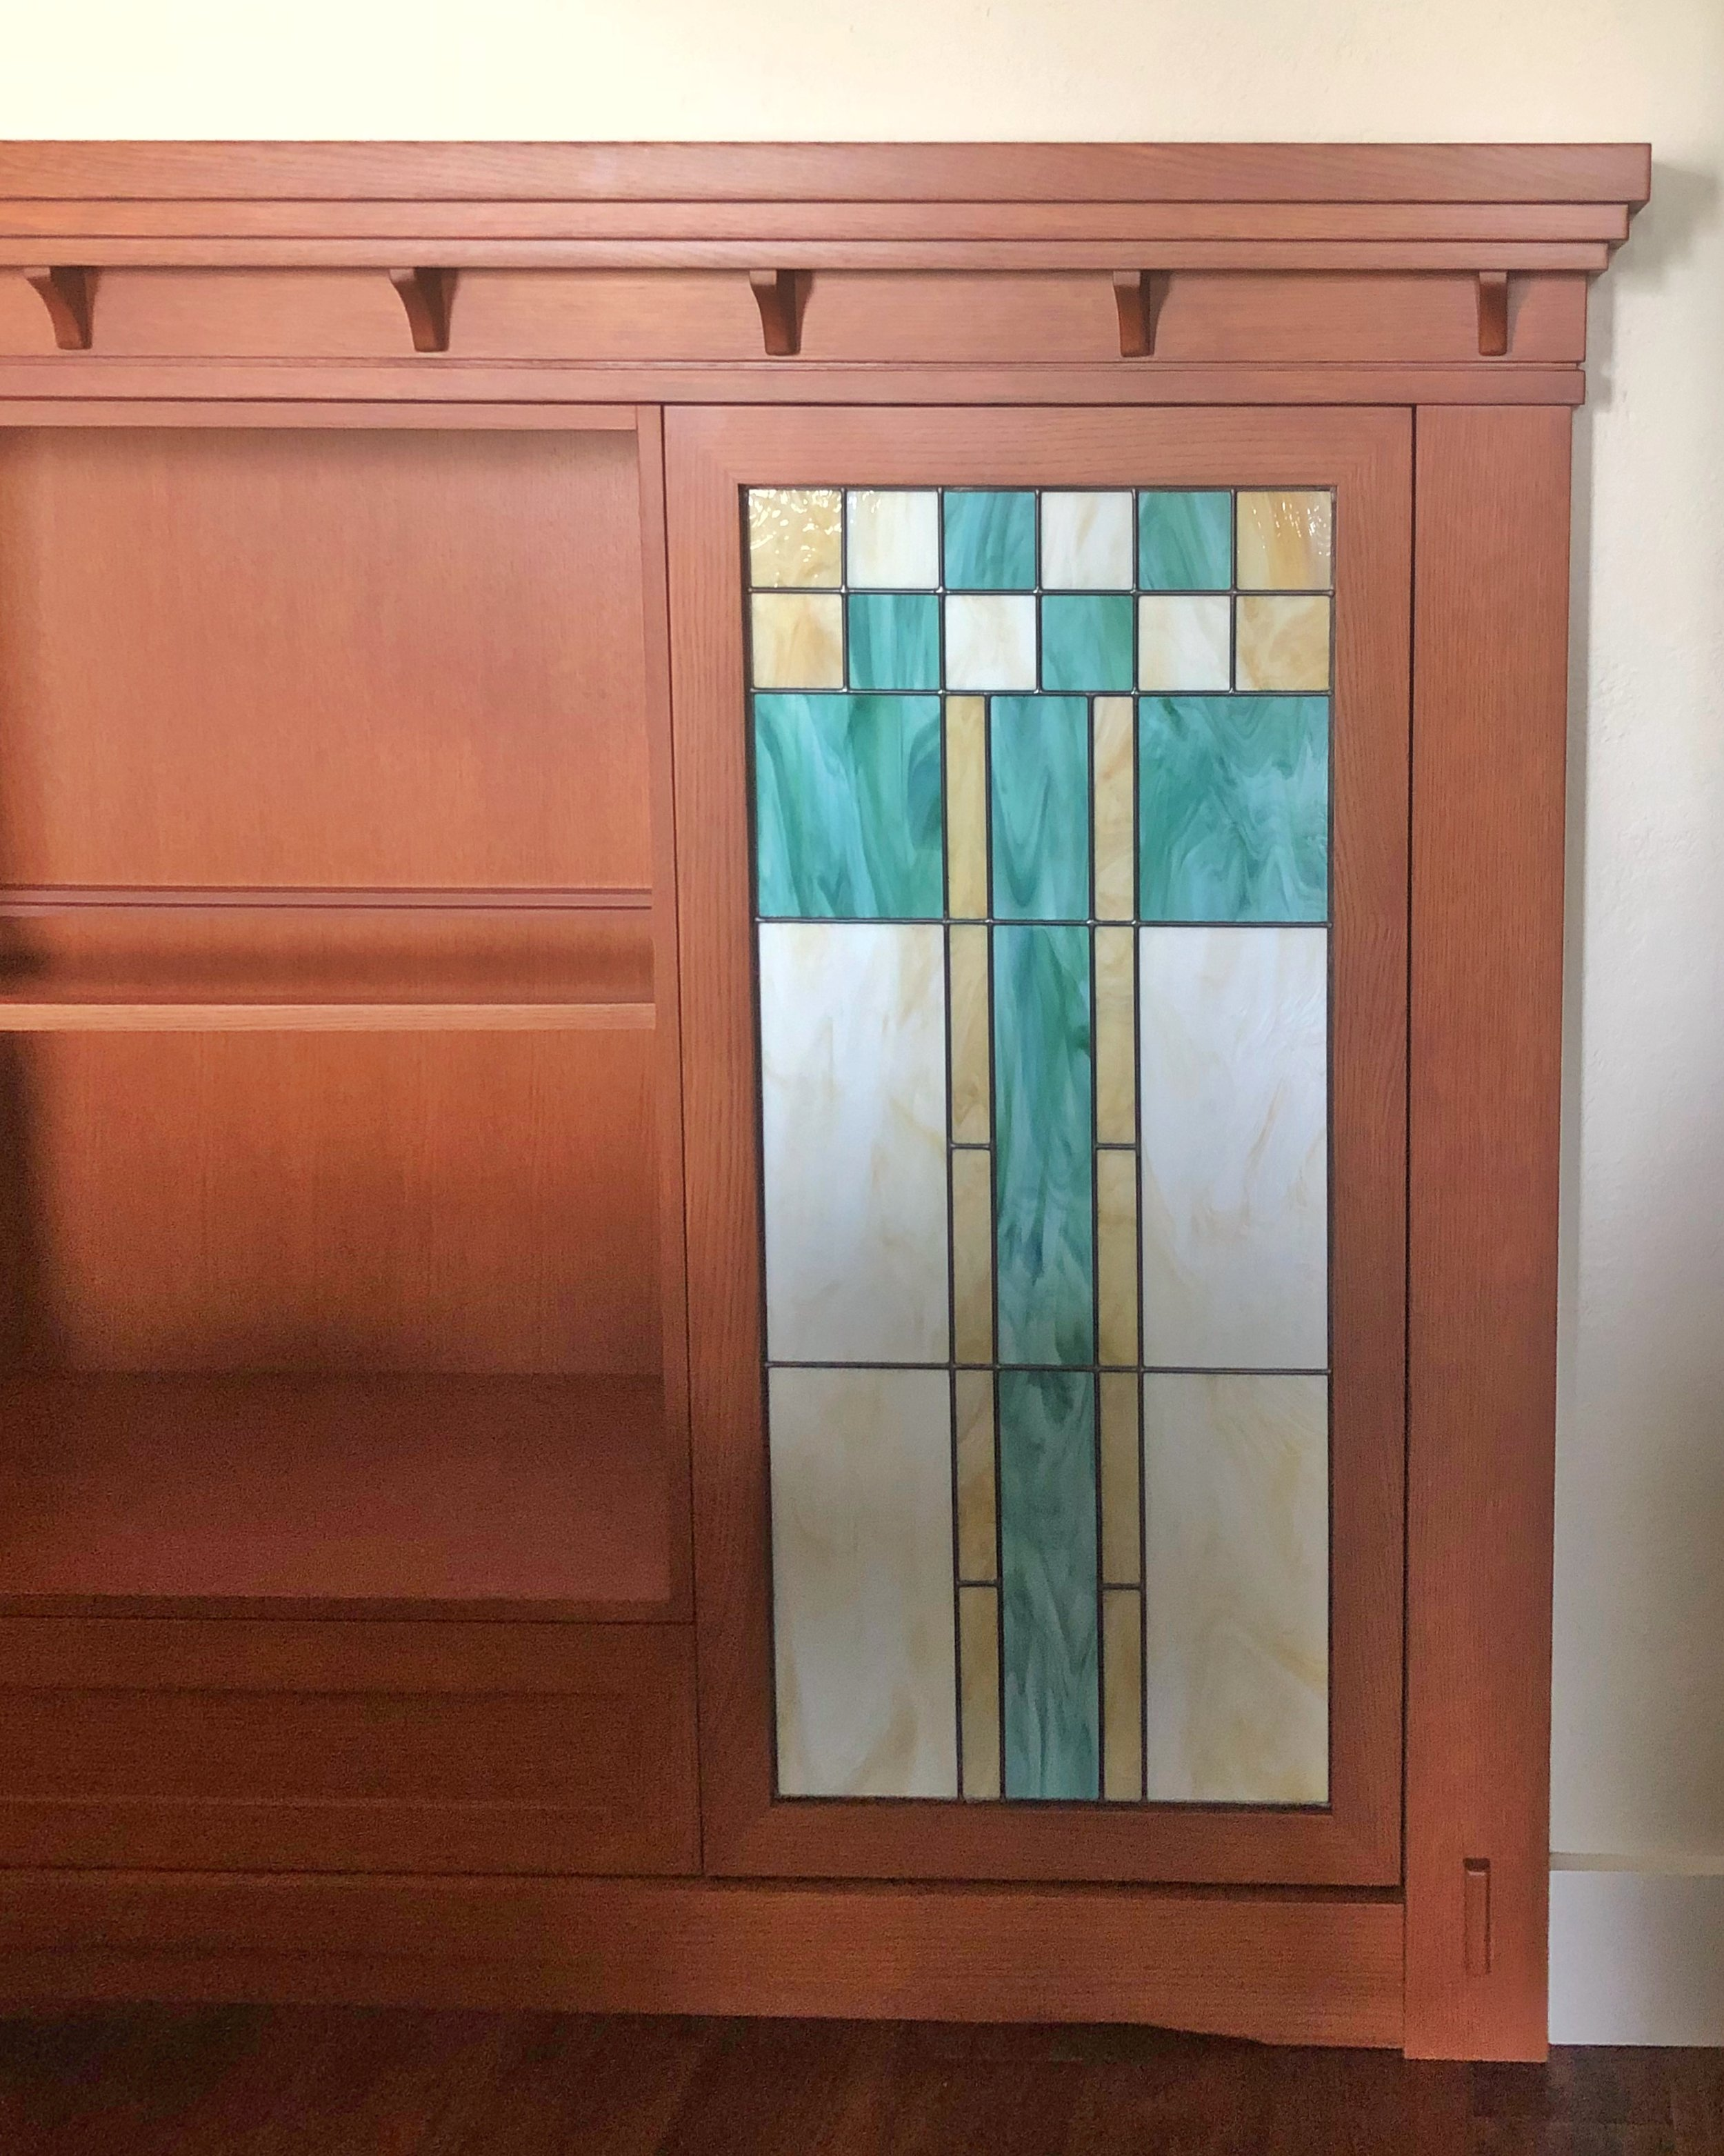 custom stained glass modern craftsman simple design cabinetry nook legacy glass studios california spectrum glass nuetral tones.jpg